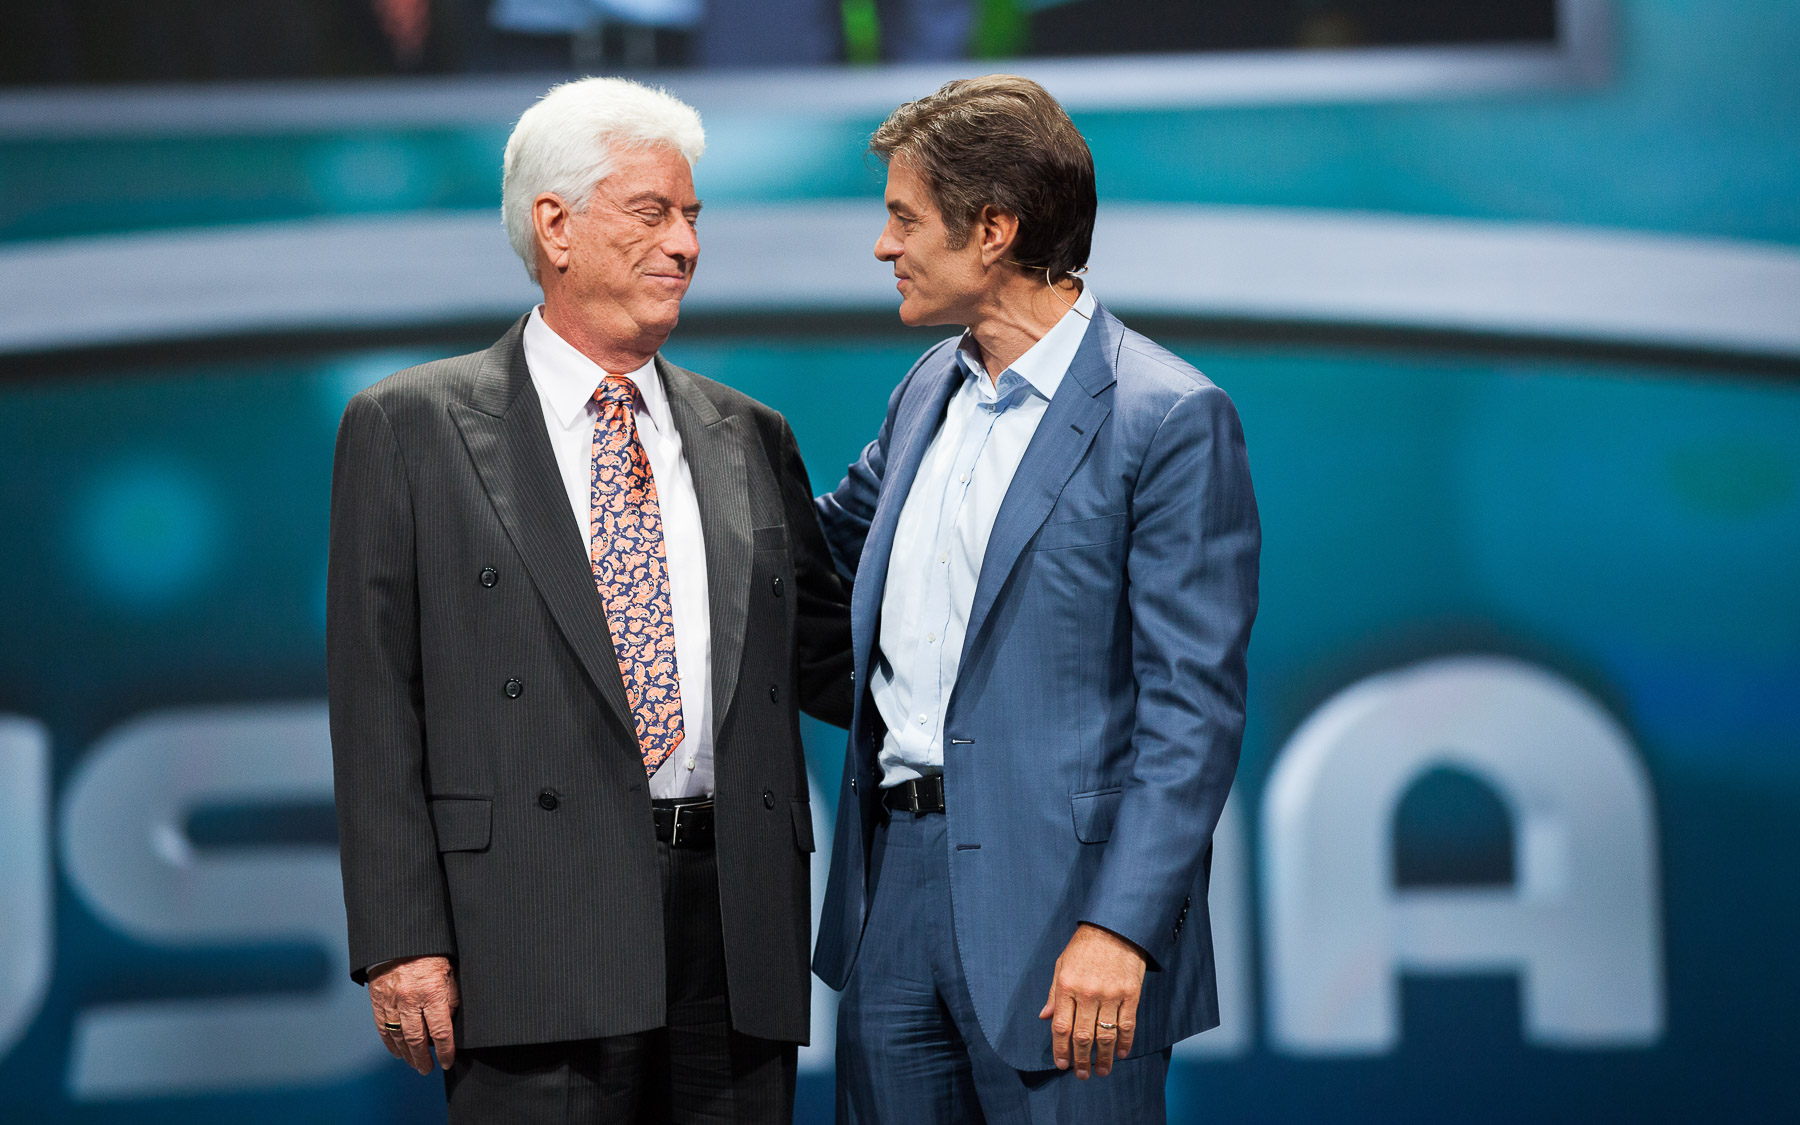 Photo of Dr. Wentz with Dr. Oz